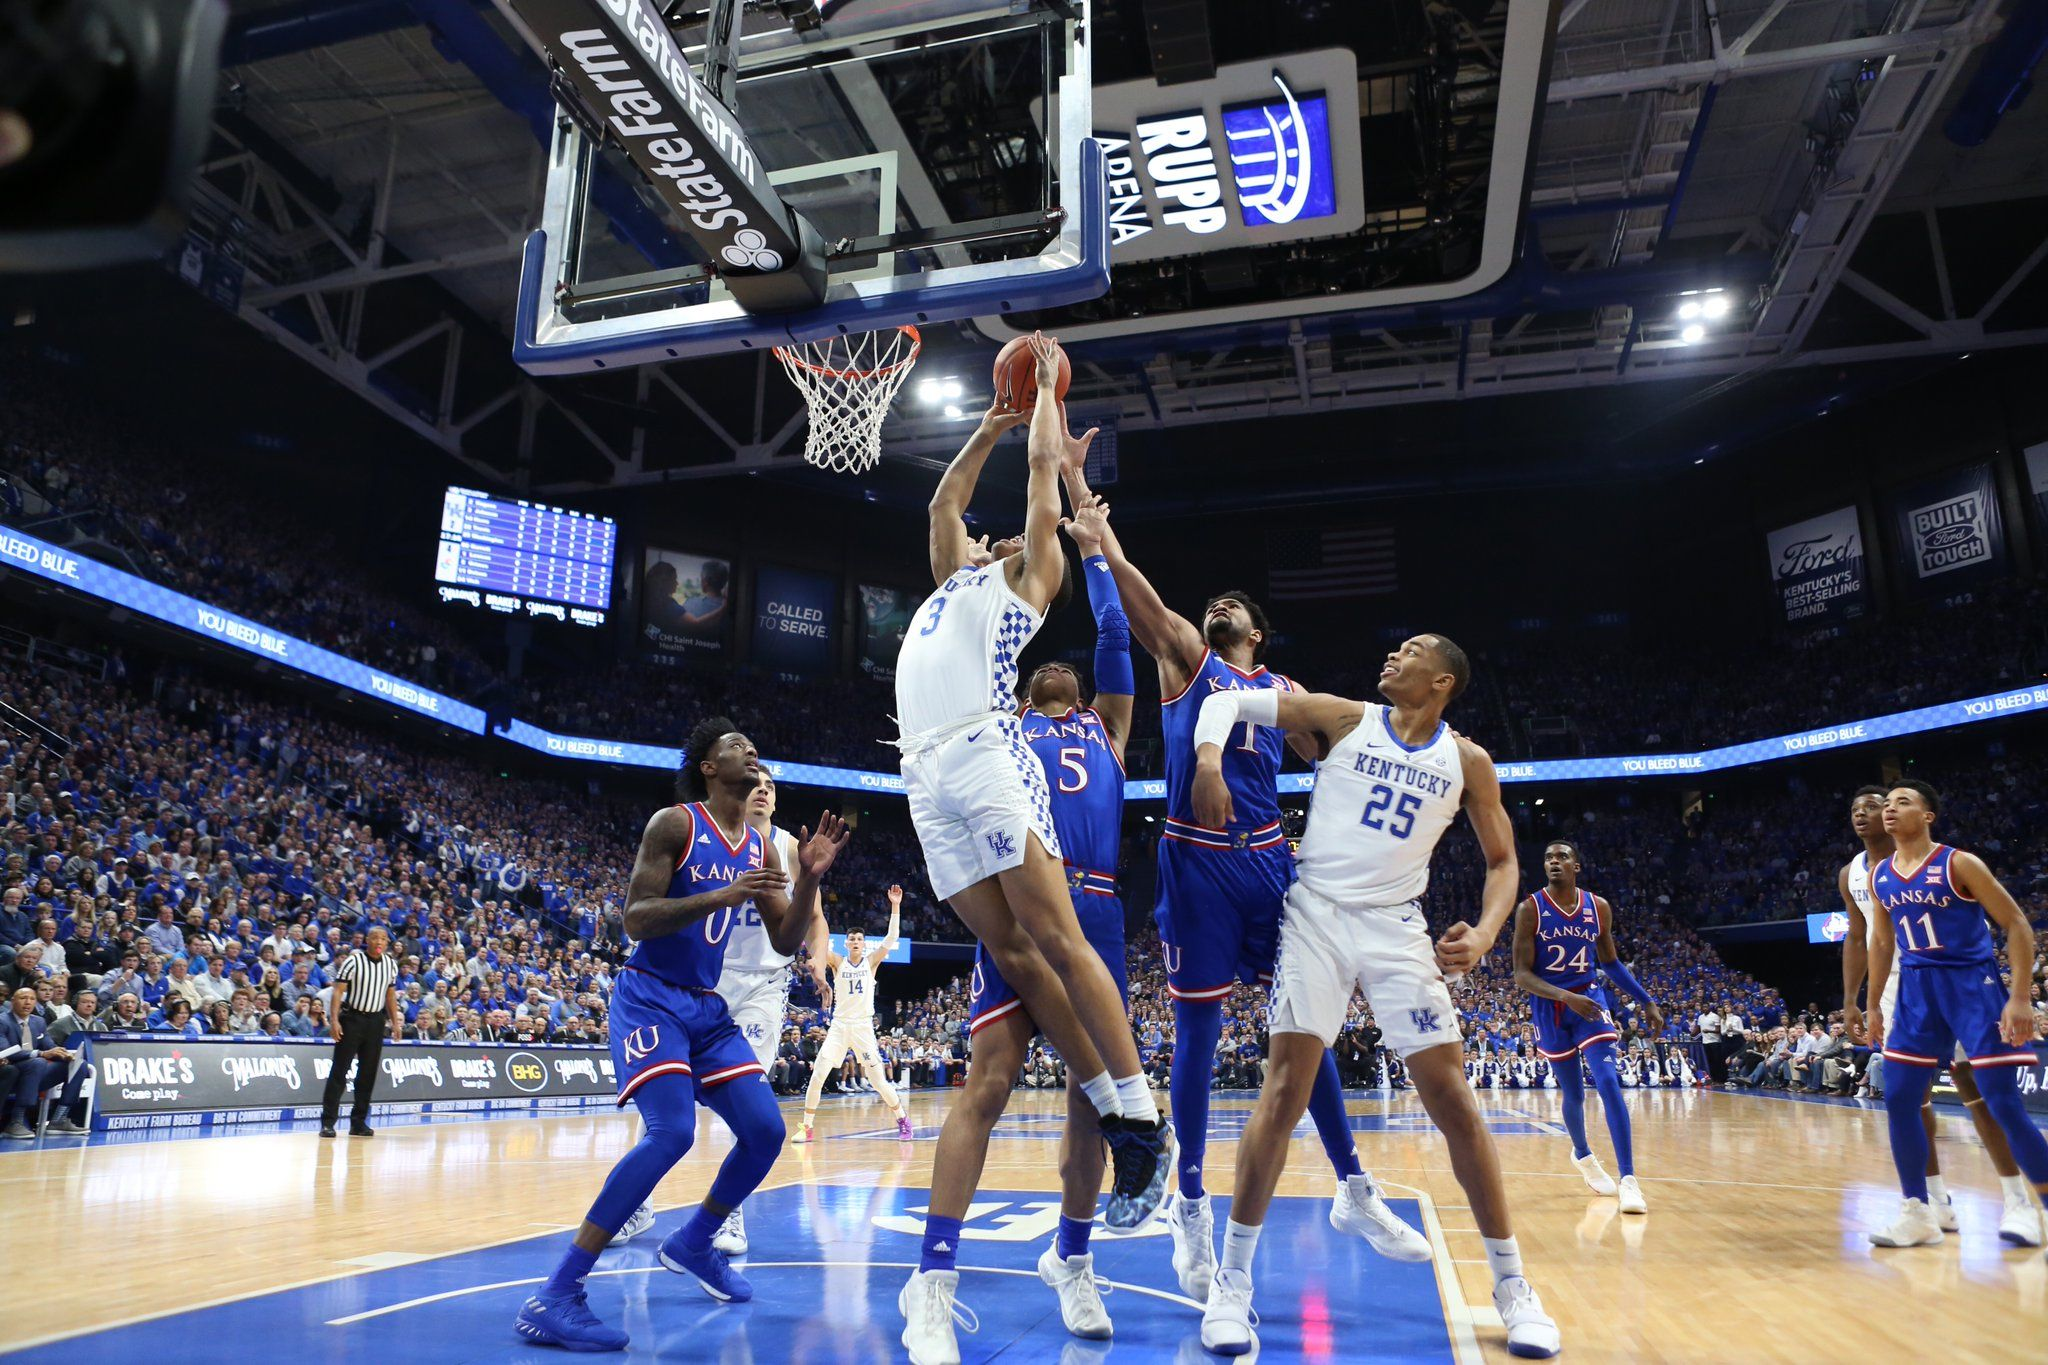 It was tough in there tonight kentucky basketball go